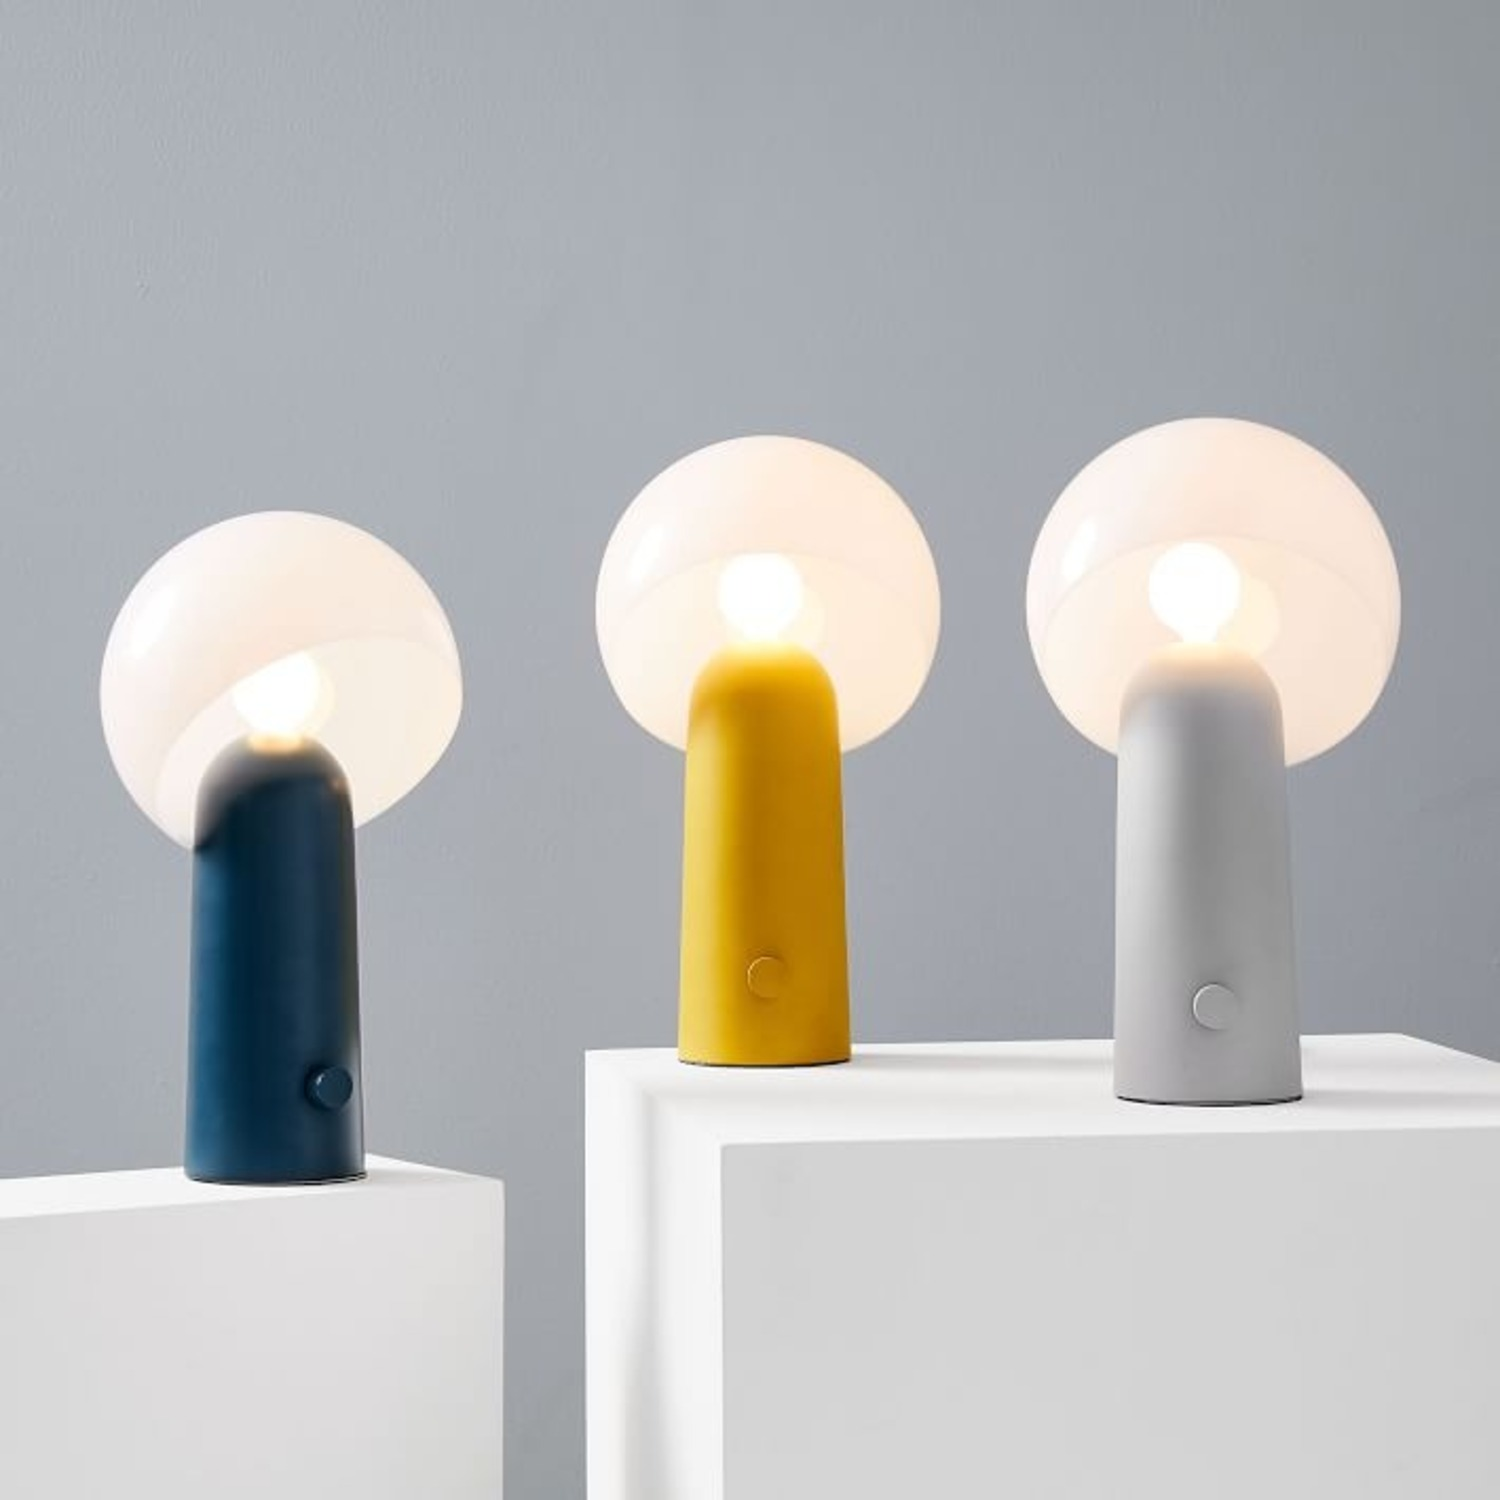 West Elm Torre Table Lamps - image-2